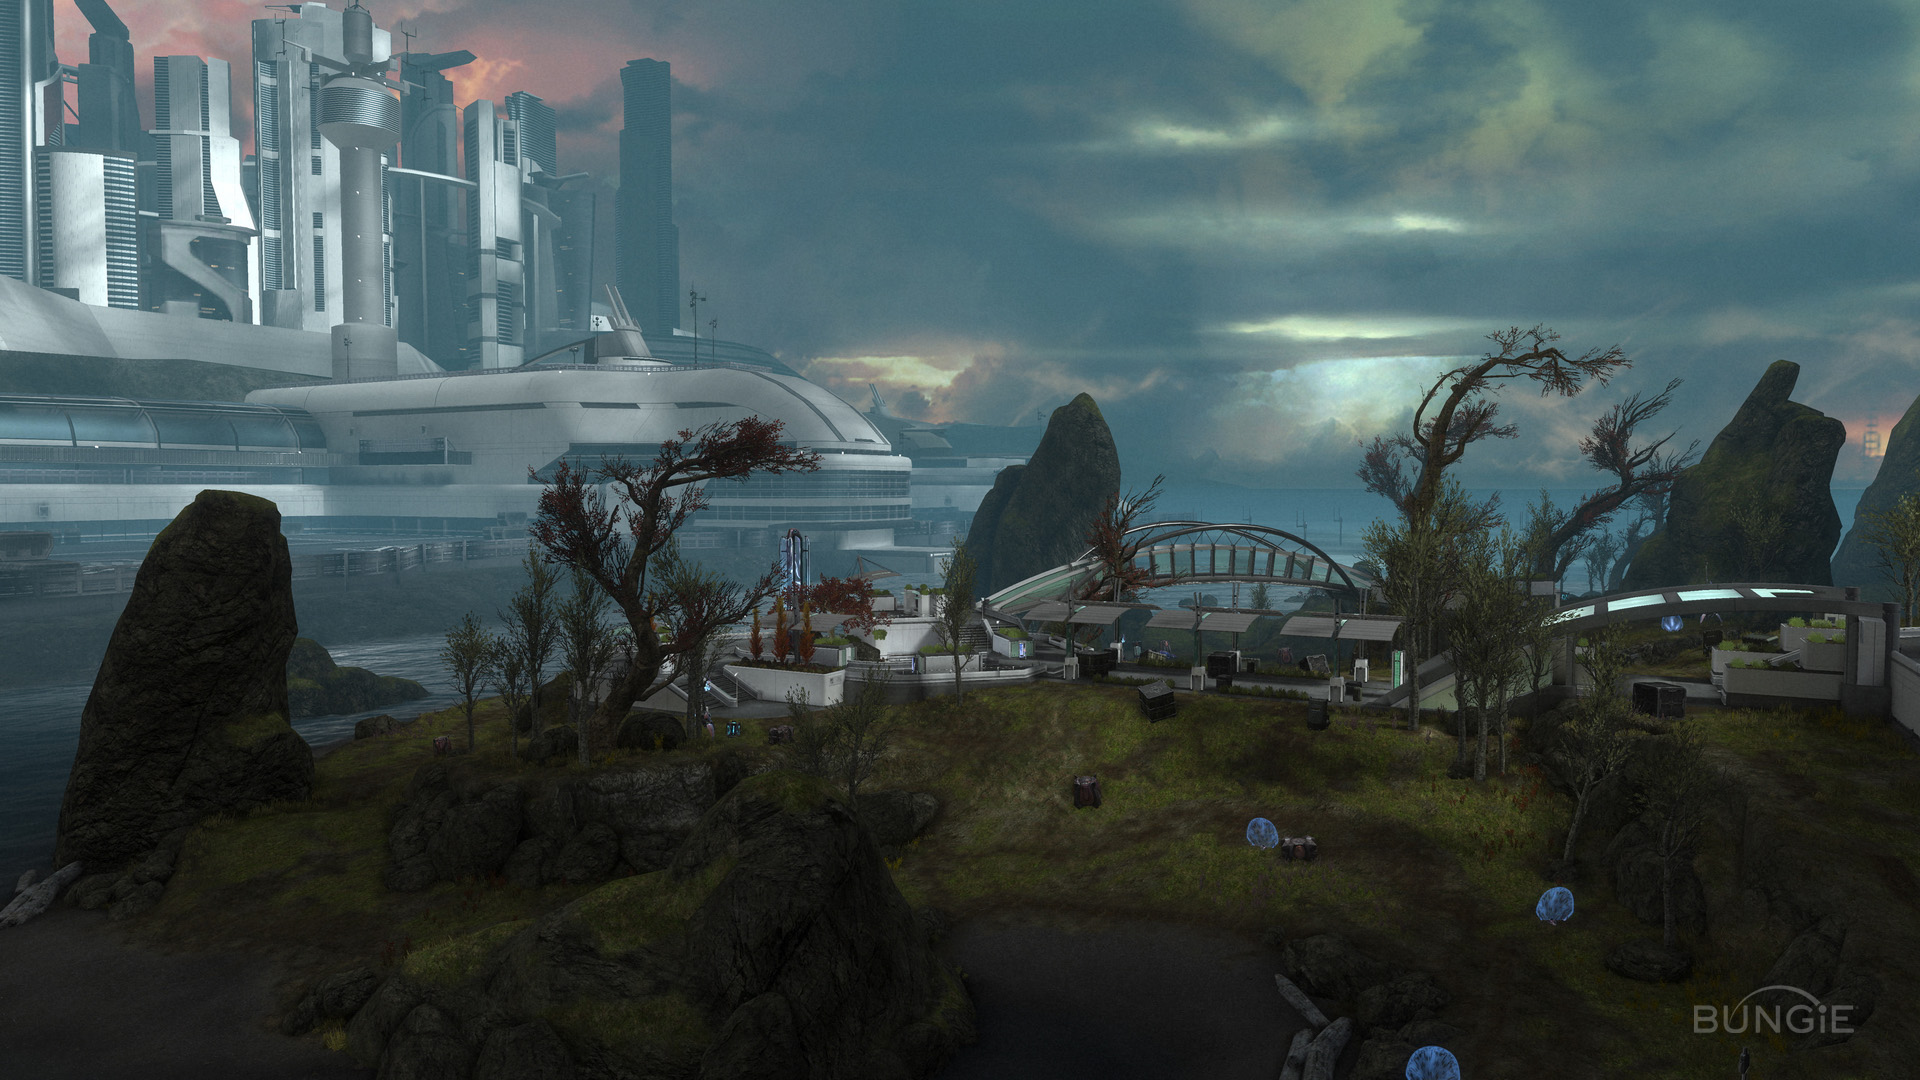 halo reach maps with Beachhead  Halo  Reach Level on The Calixis Sector furthermore Halo 4 Master Chief Elites Grunts Maps Revealed Via Amazing Art Screens likewise Halo 2  The Official Strategy Guide moreover 87382 Multiplayer Guide The New Vehicles further Halo Ccs Class Battlecruiser Covanent.